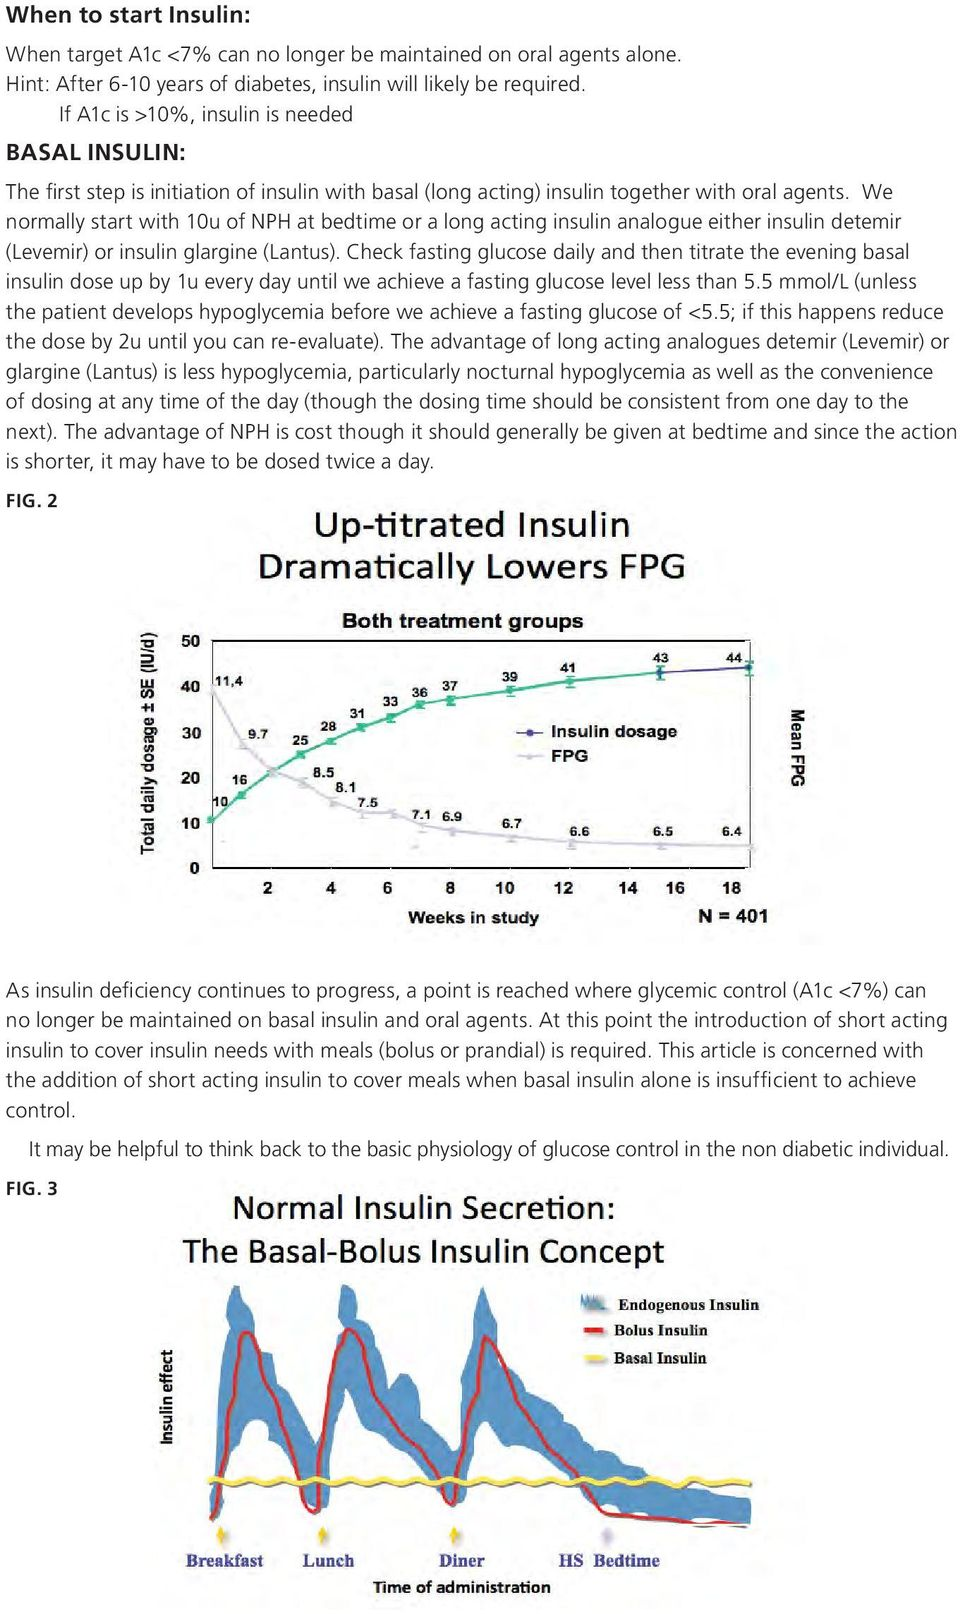 We normally start with 10u of NPH at bedtime or a long acting insulin analogue either insulin detemir (Levemir) or insulin glargine (Lantus).